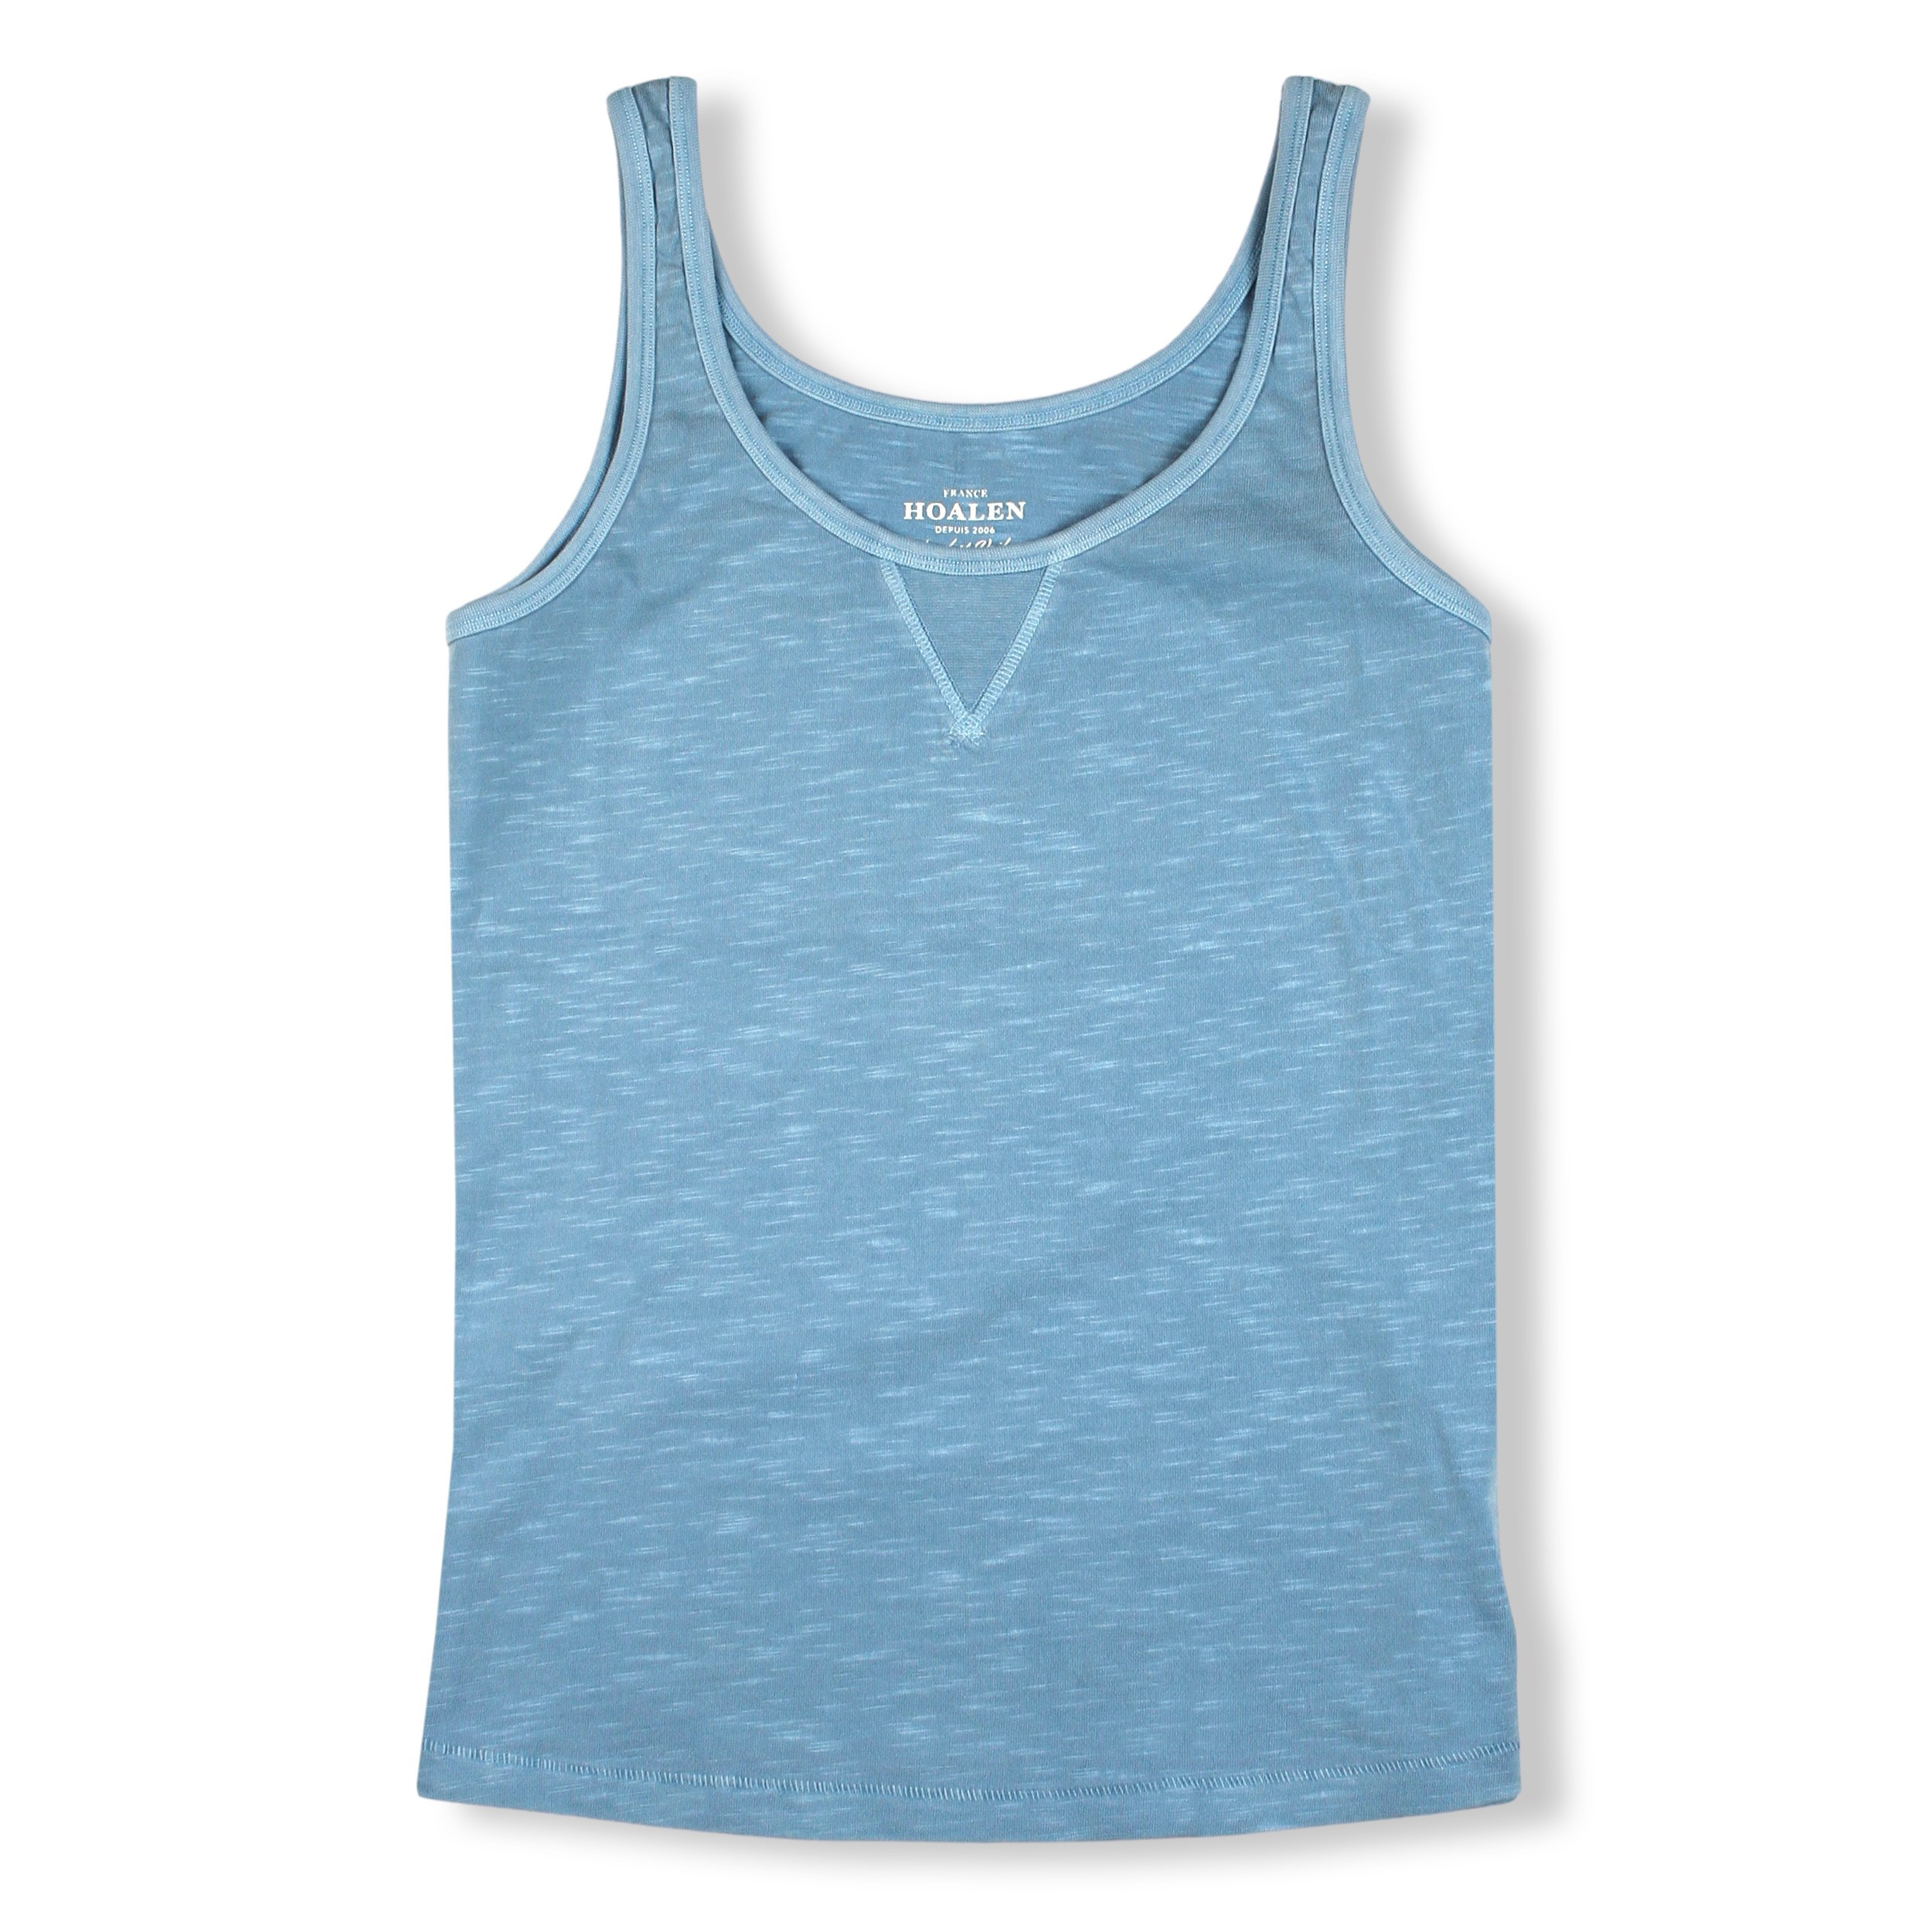 Top tank 100% cotton